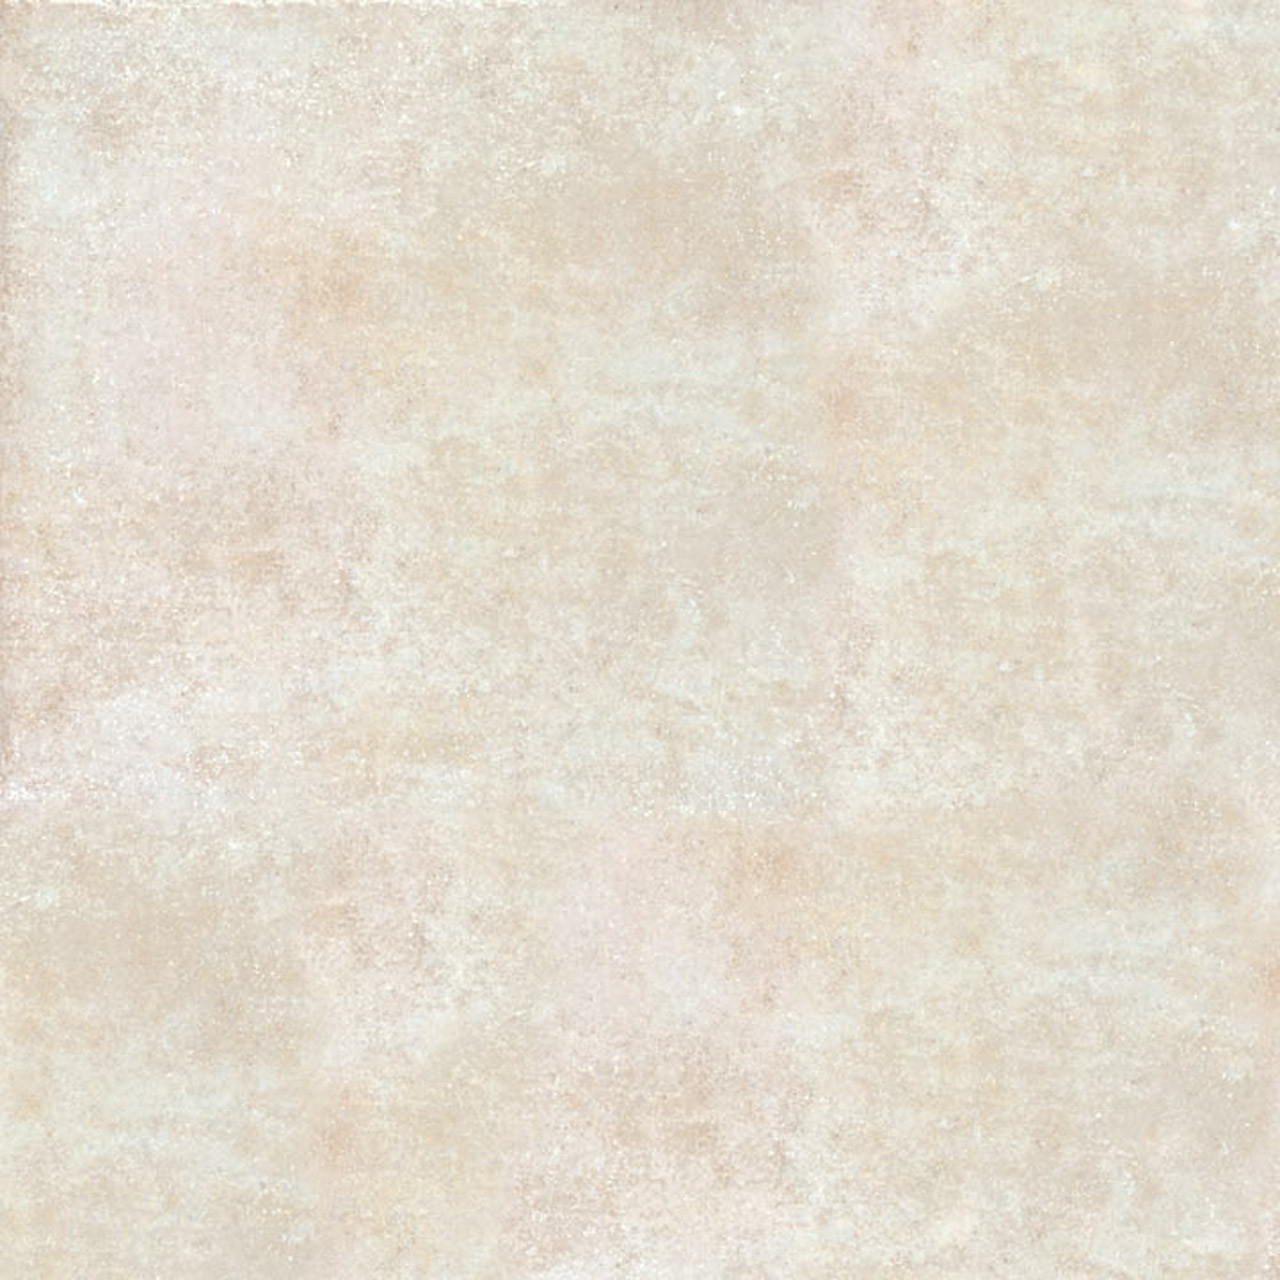 Matt pale beige porcelain floor tile matt pale beige porcelain floor tile dailygadgetfo Gallery